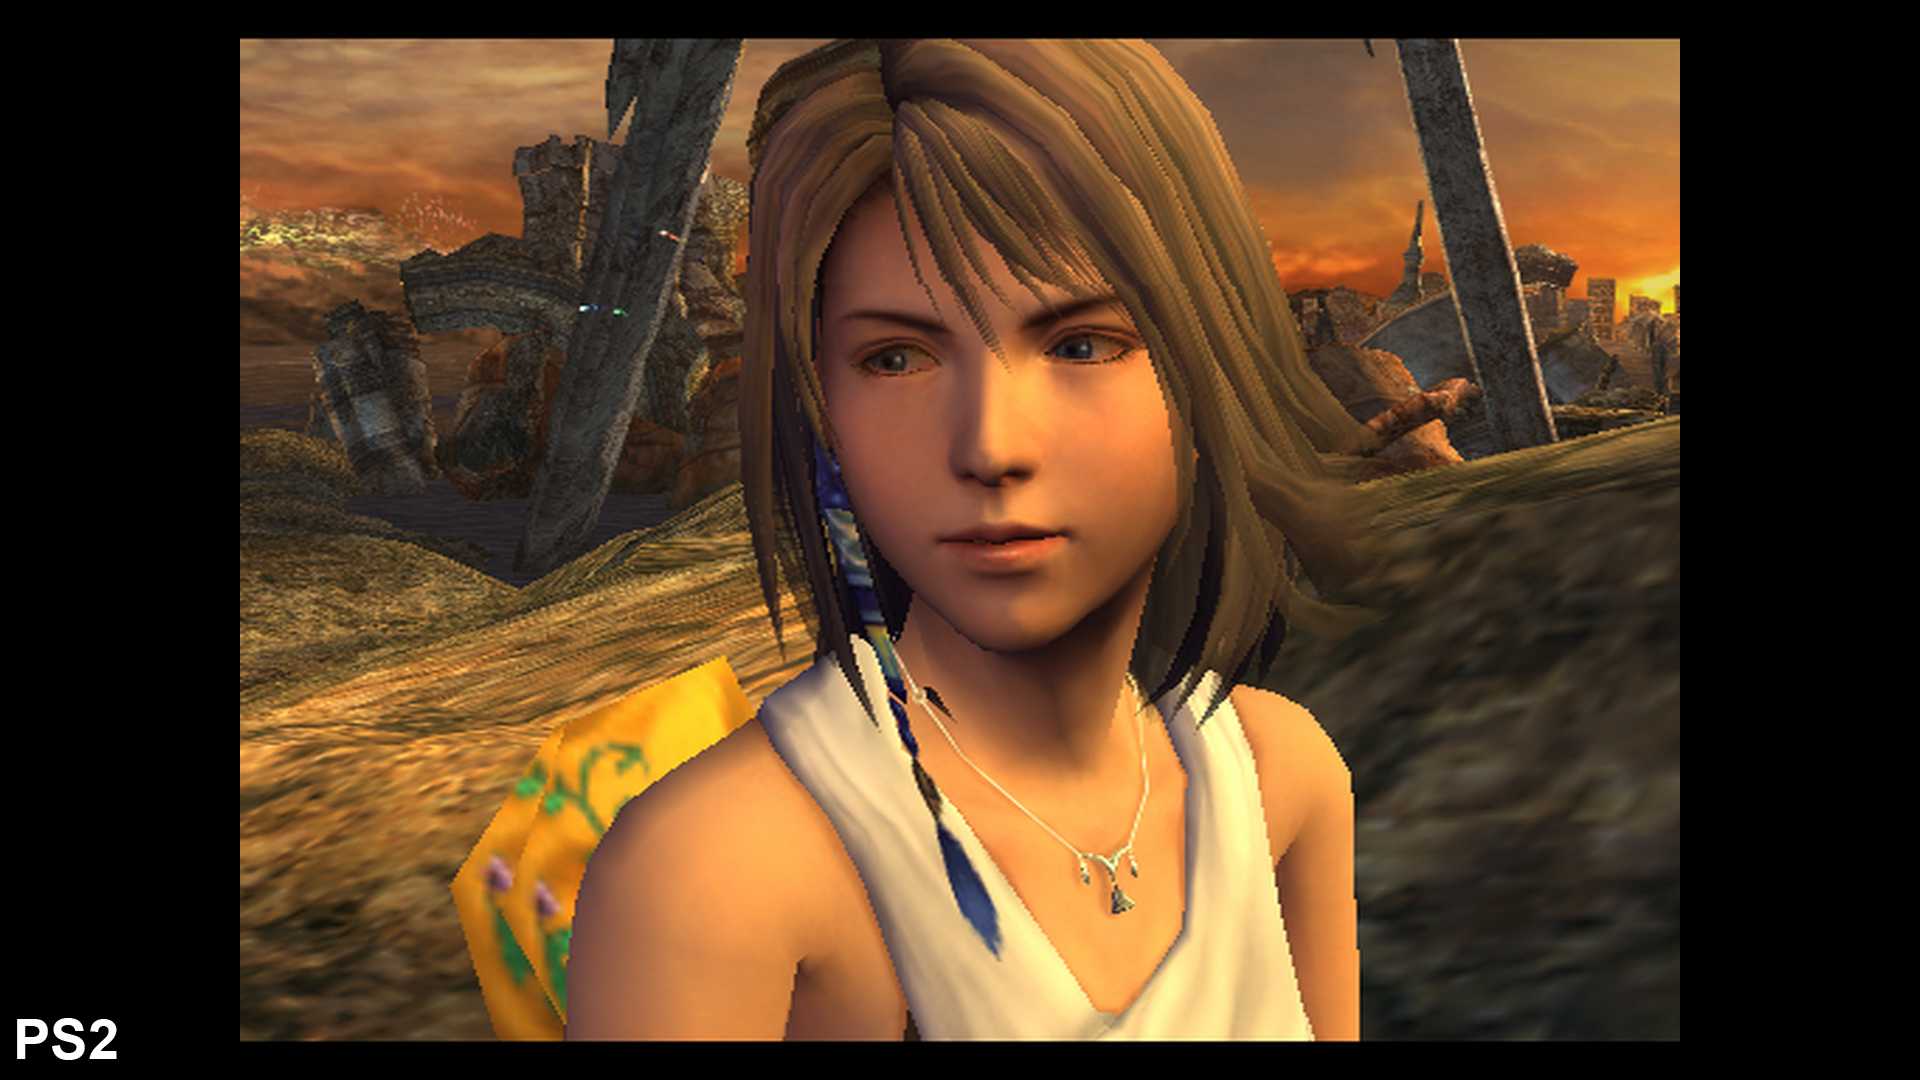 Final Fantasy X Sexy face-off: final fantasy x/x-2 remaster on ps4 • eurogamer